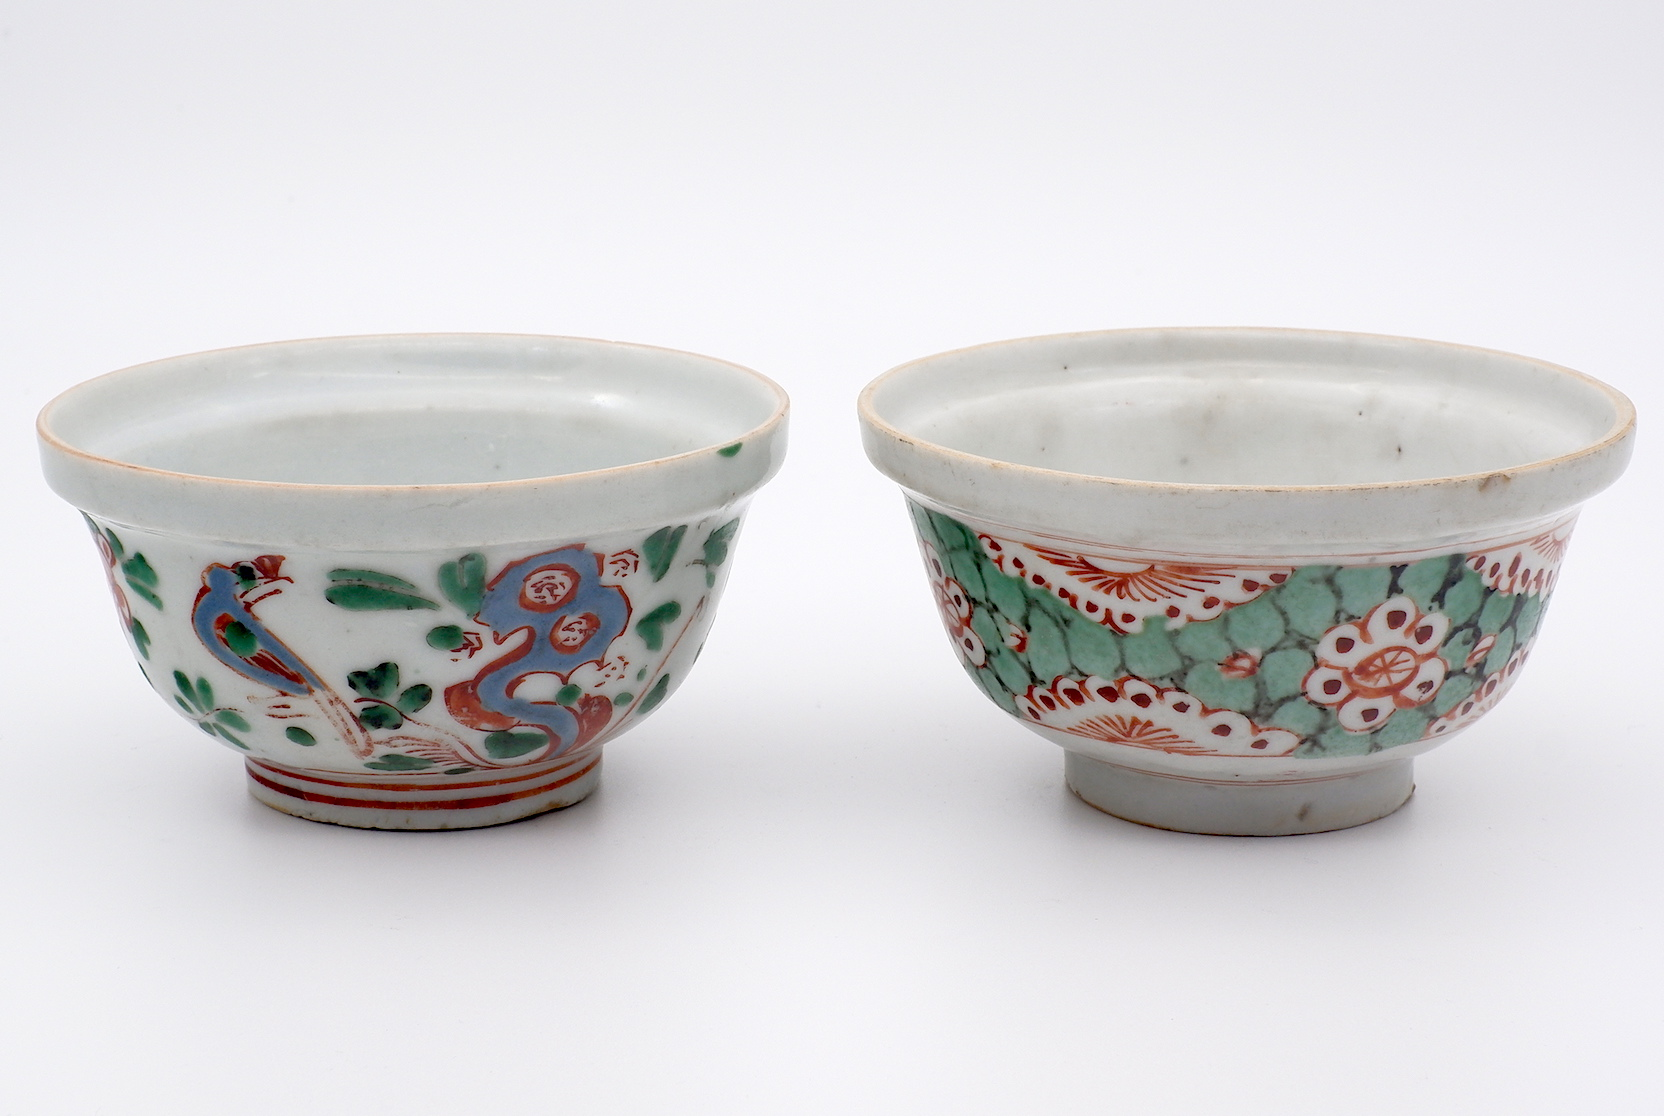 'Two Chinese Enamelled Tea Bowls with Overglaze Red, Early Qing 18th Century'